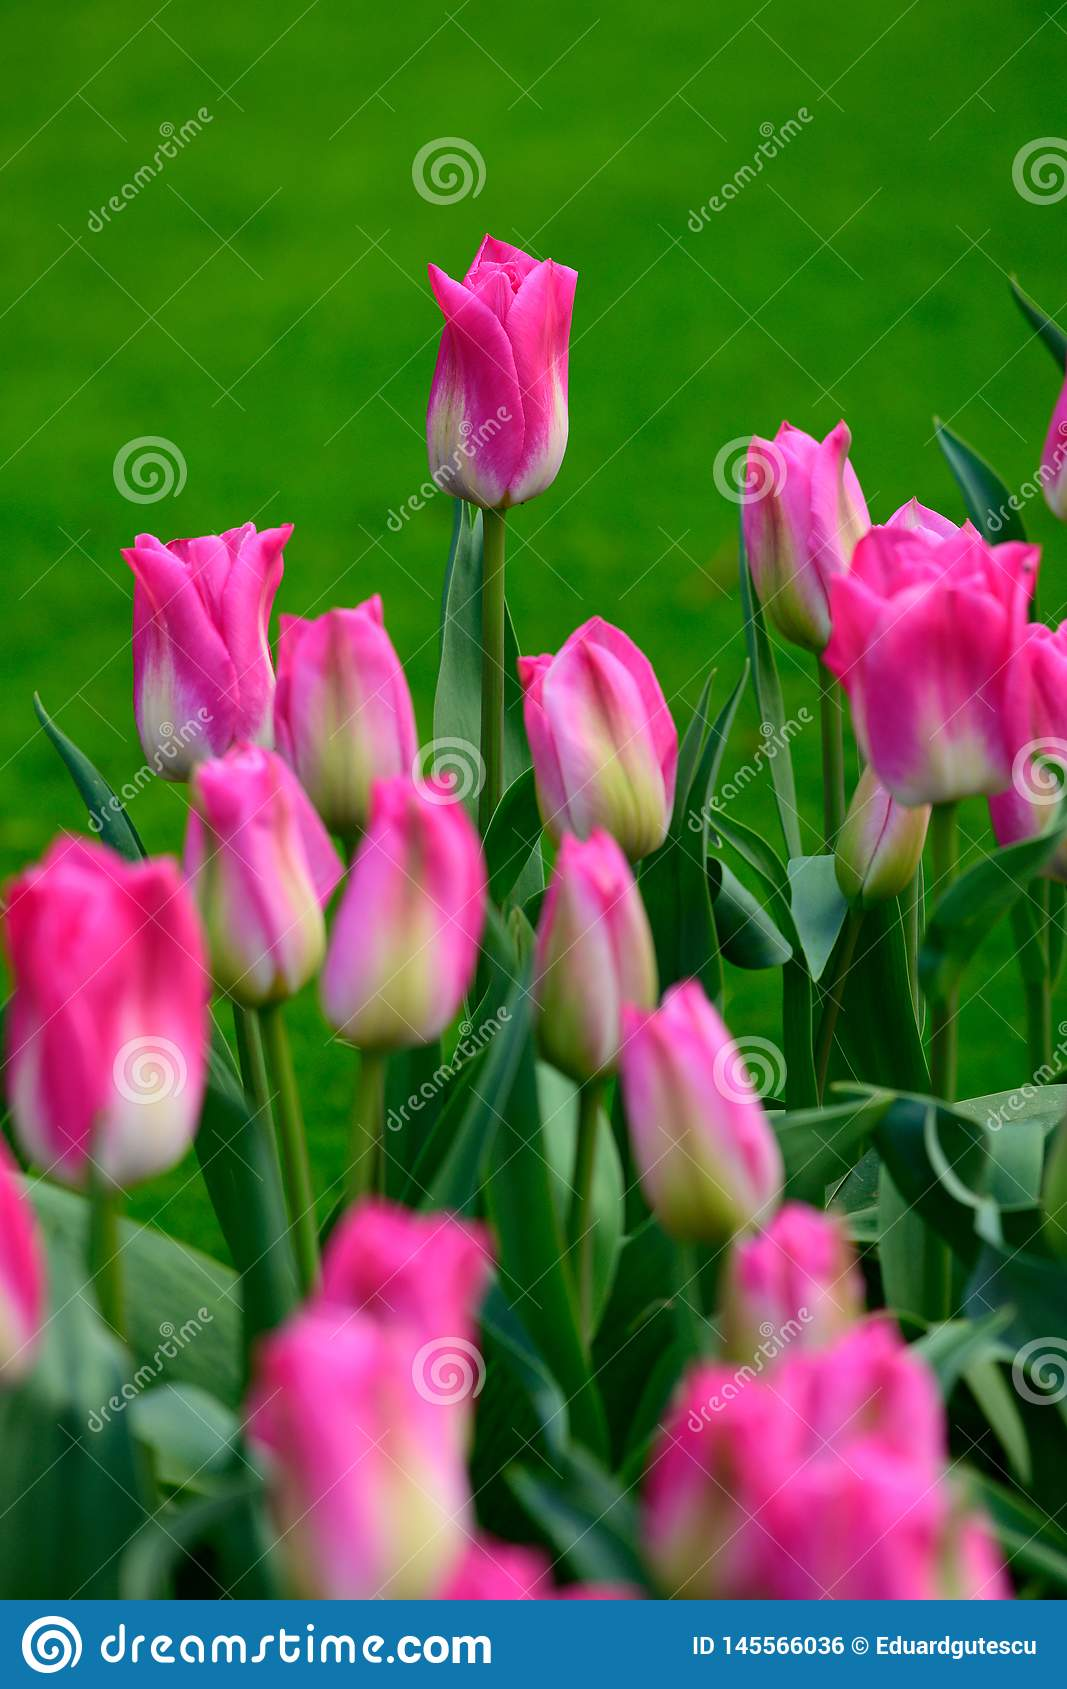 Pink tulips close up in Holland , spring time flowers in Keukenhof